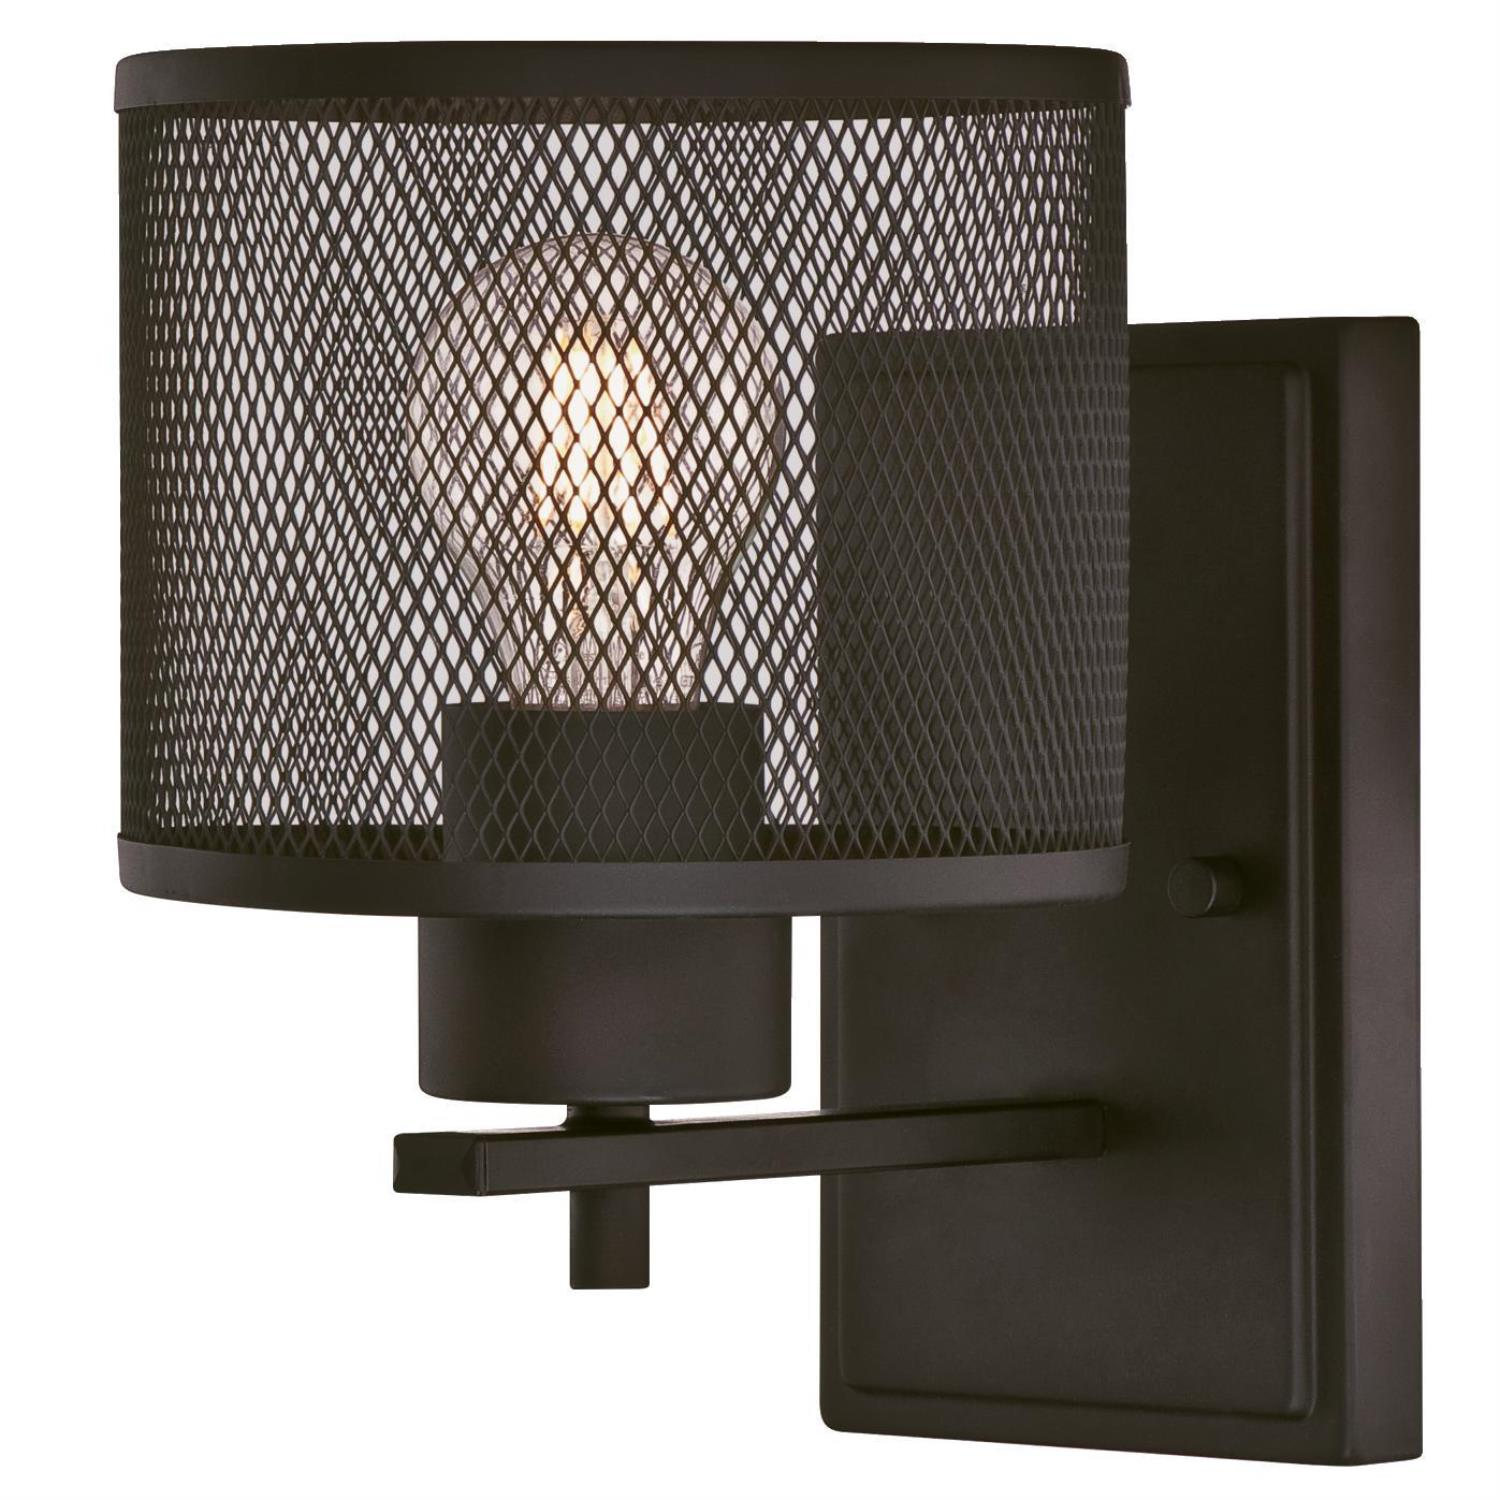 1 Light Wall Fixture Oil Rubbed Bronze Finish with Mesh Shade